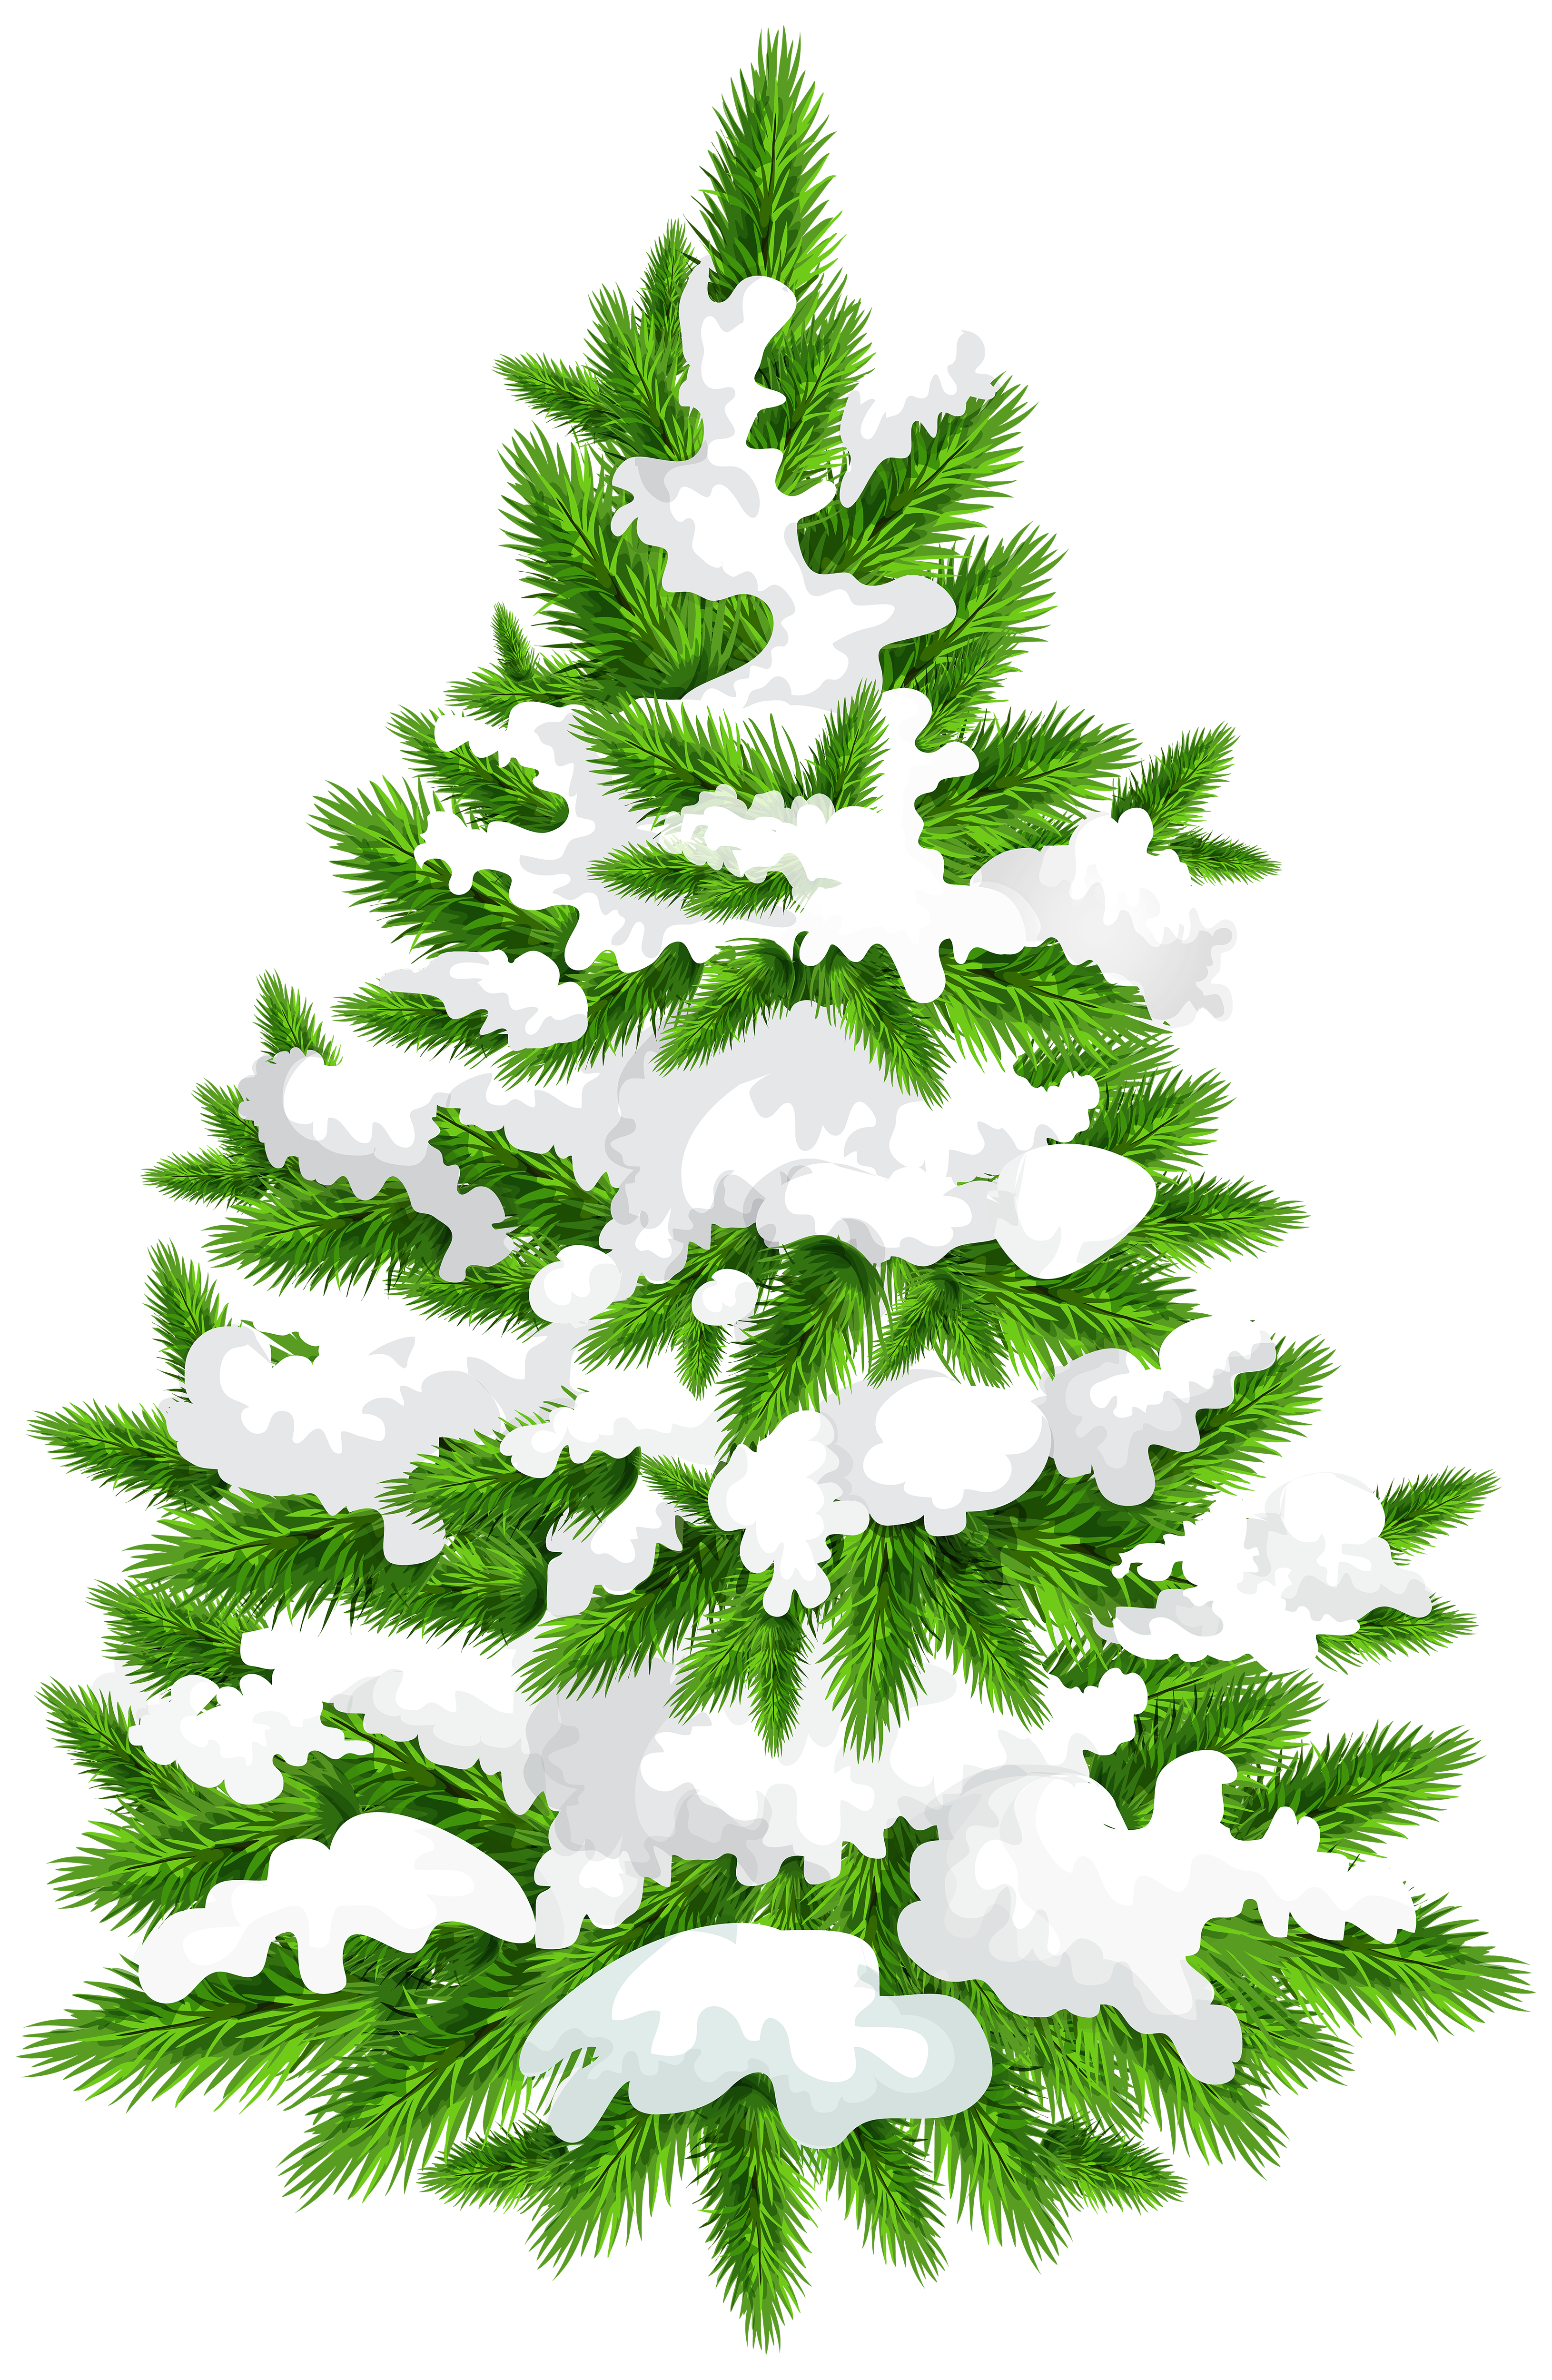 Pine trees clipart png. Snowy tree clip art